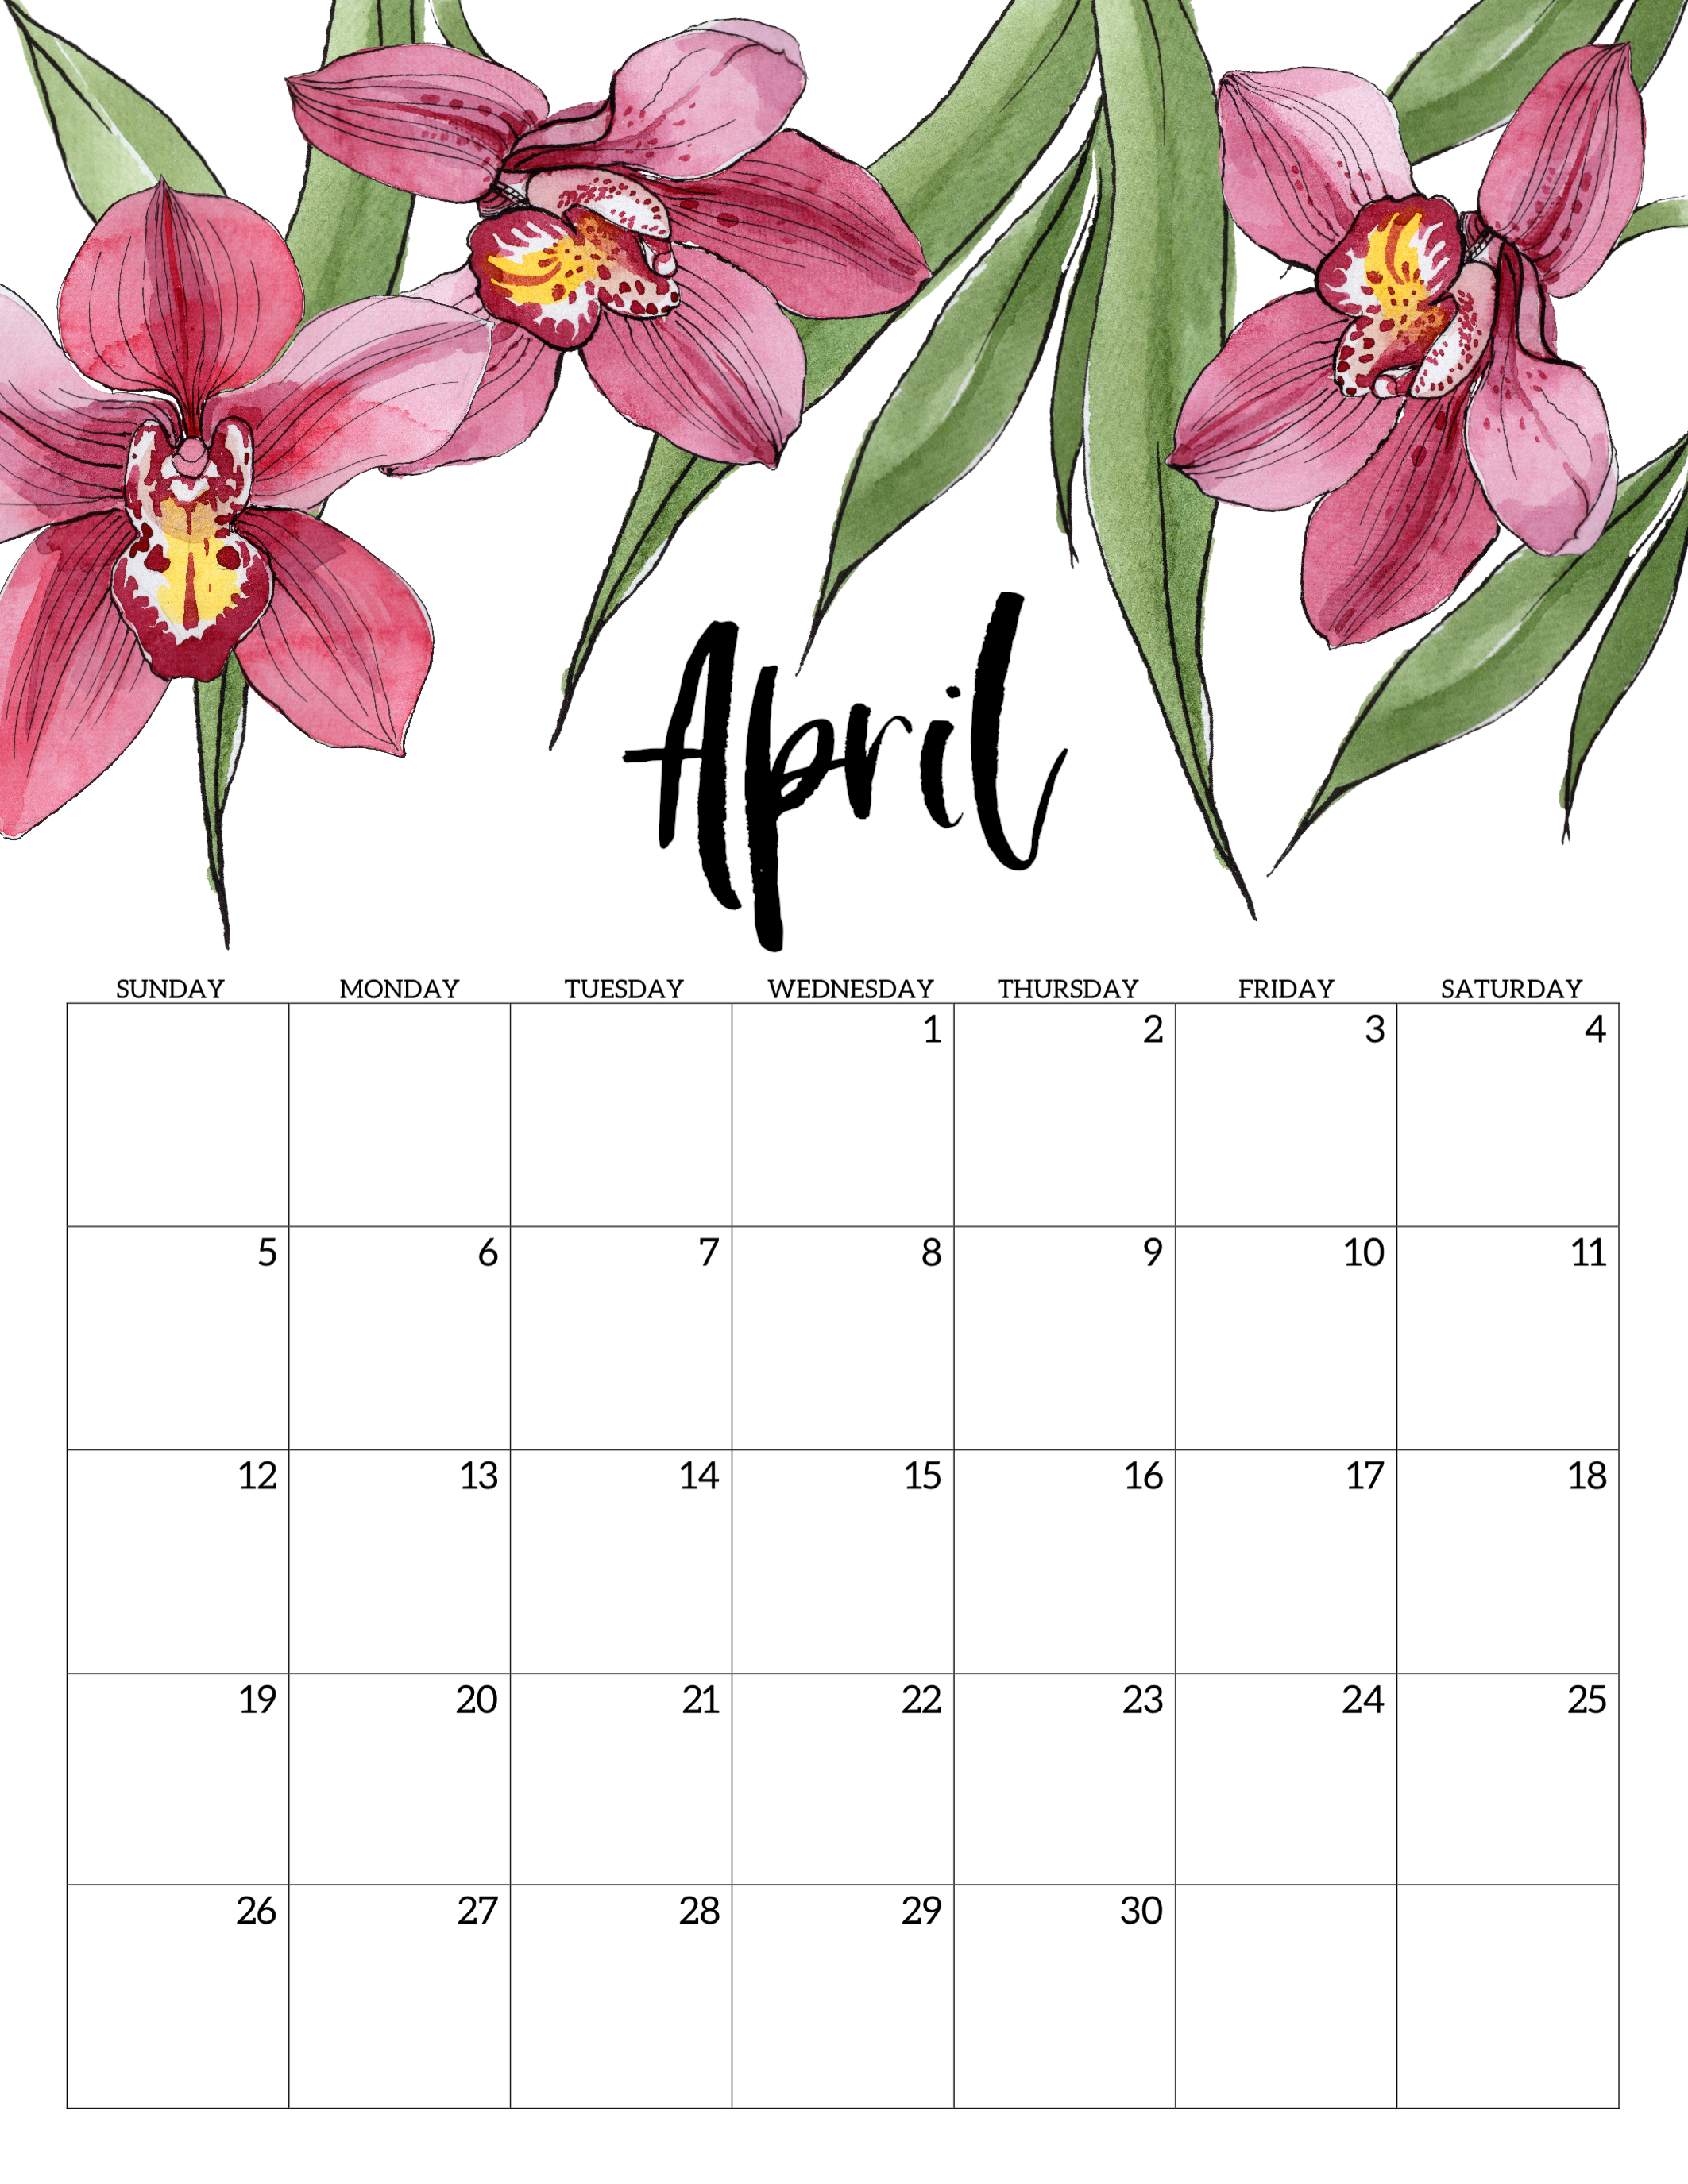 graphic relating to Free Printable Flower identified as 2020 Totally free Printable Calendar - Floral - Paper Path Design and style